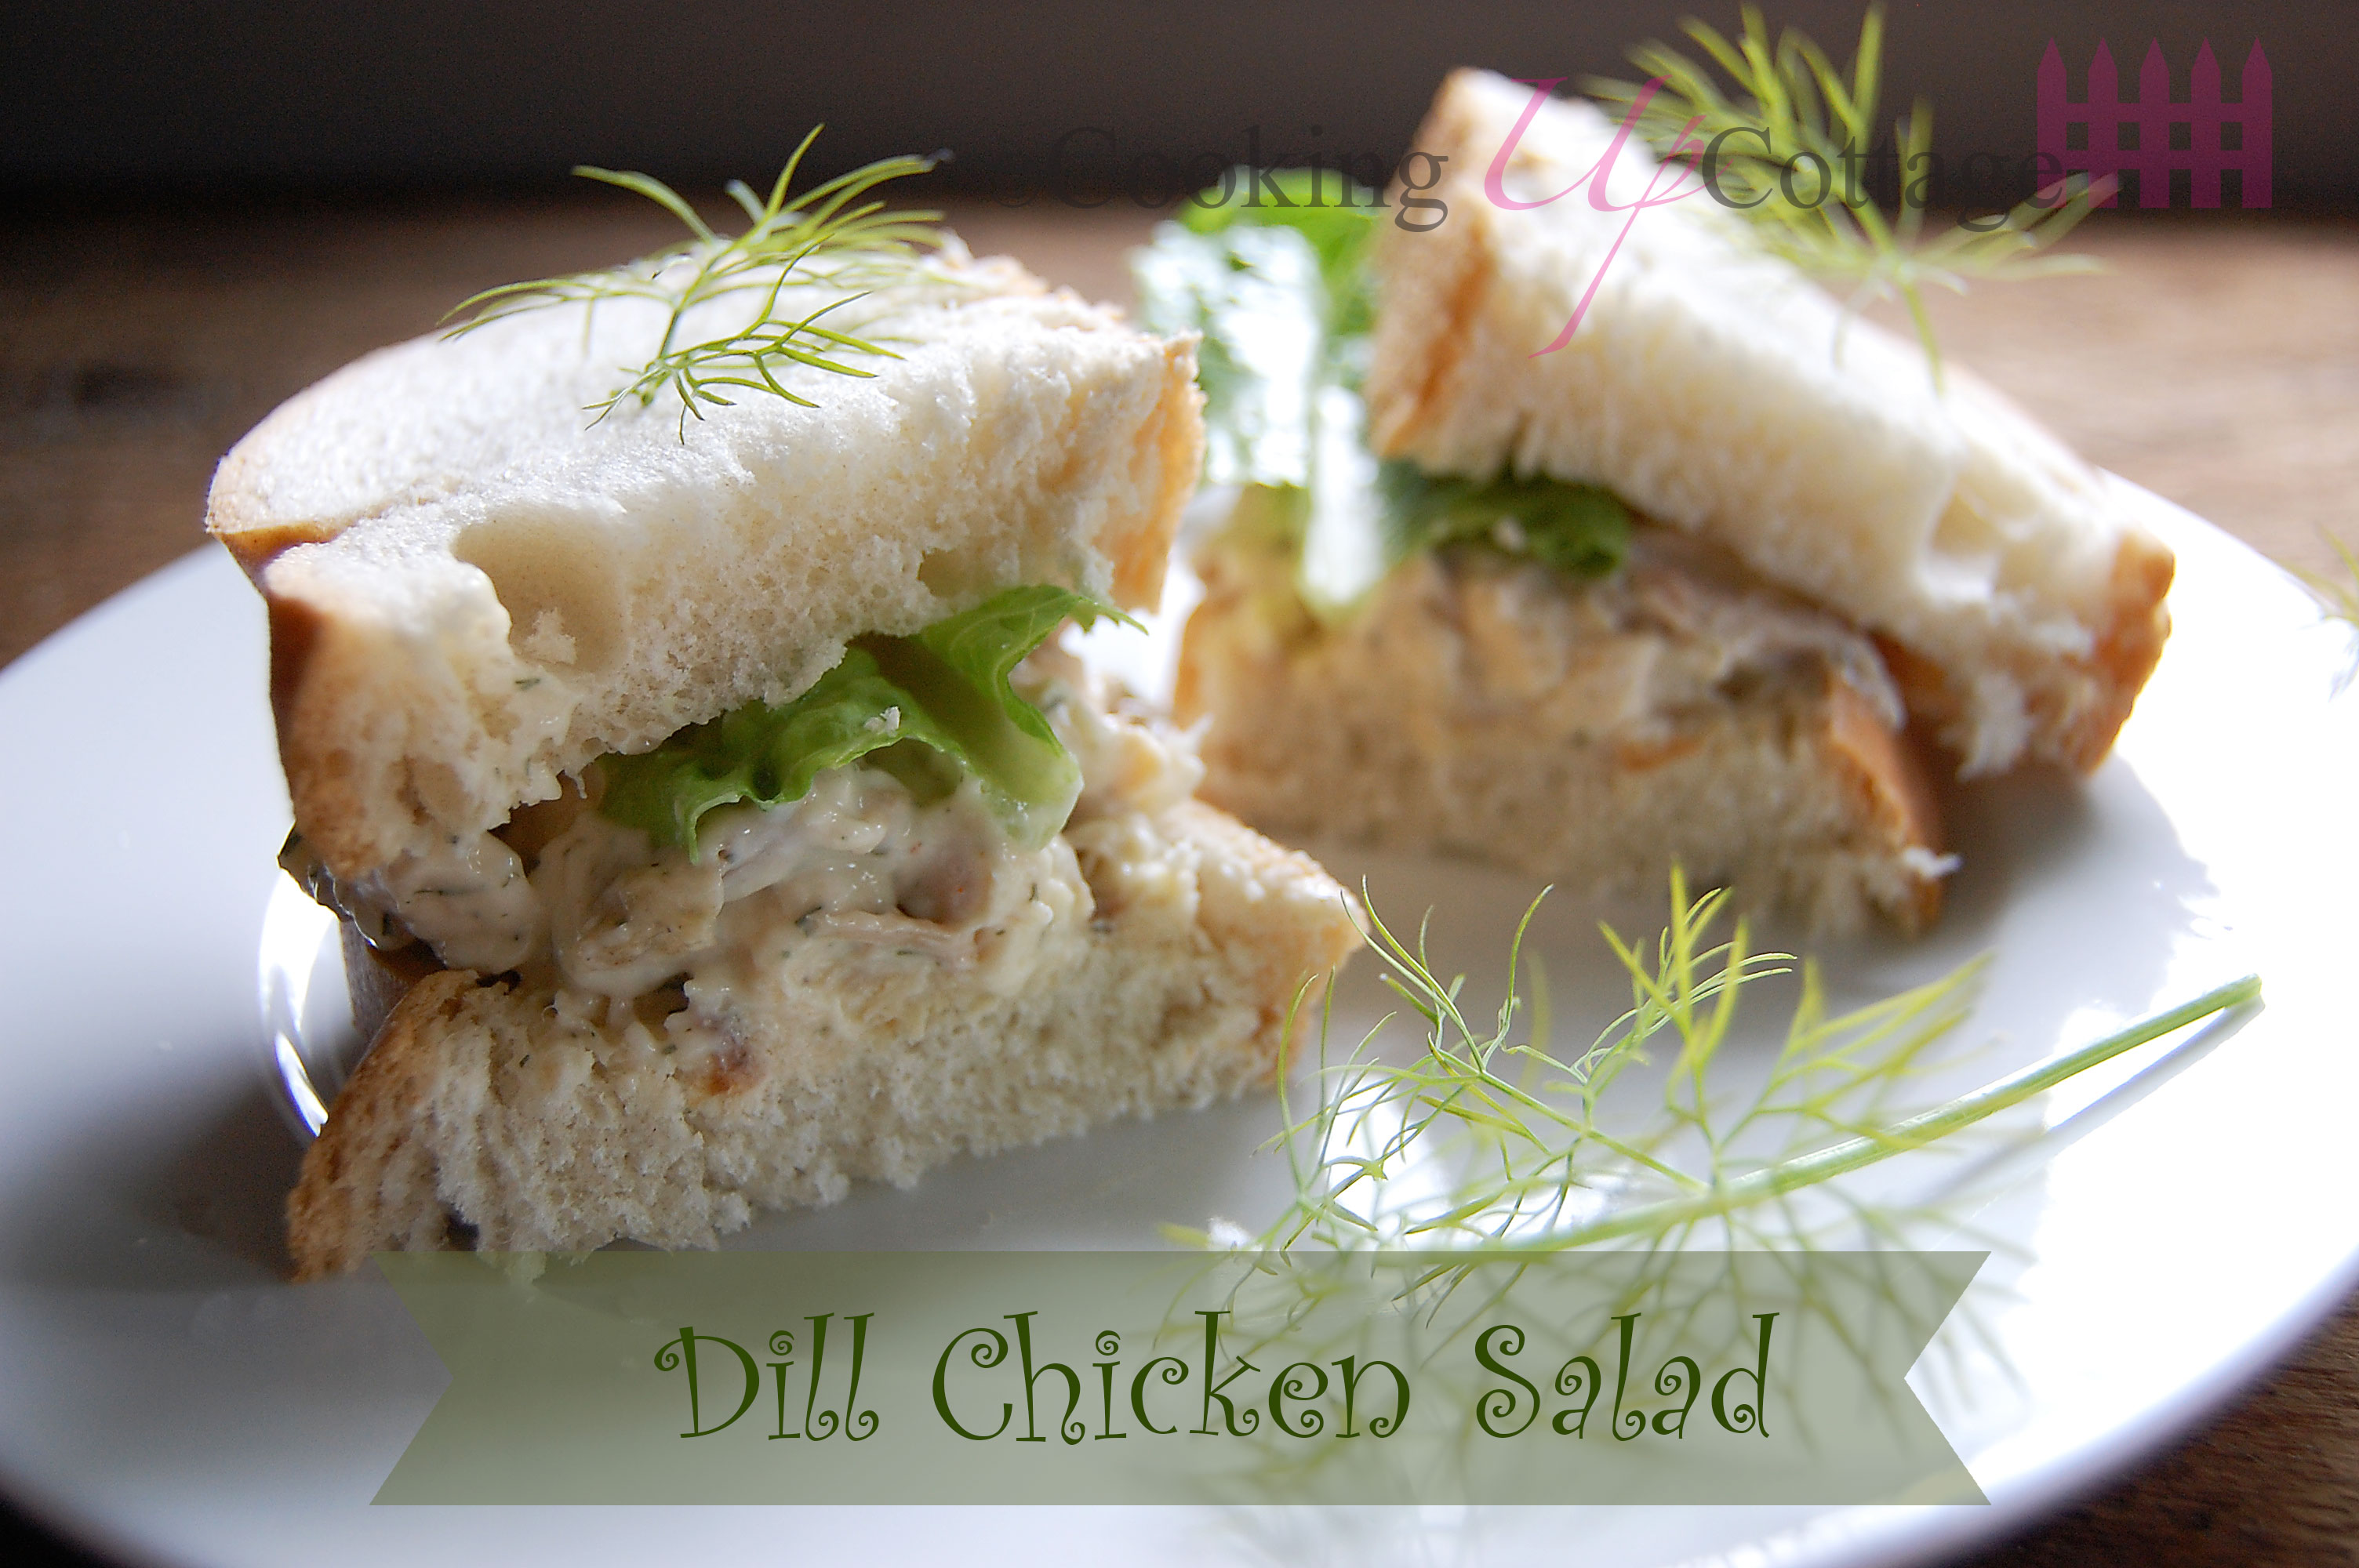 Dill Chicken Salad Sandwiches Recipes — Dishmaps